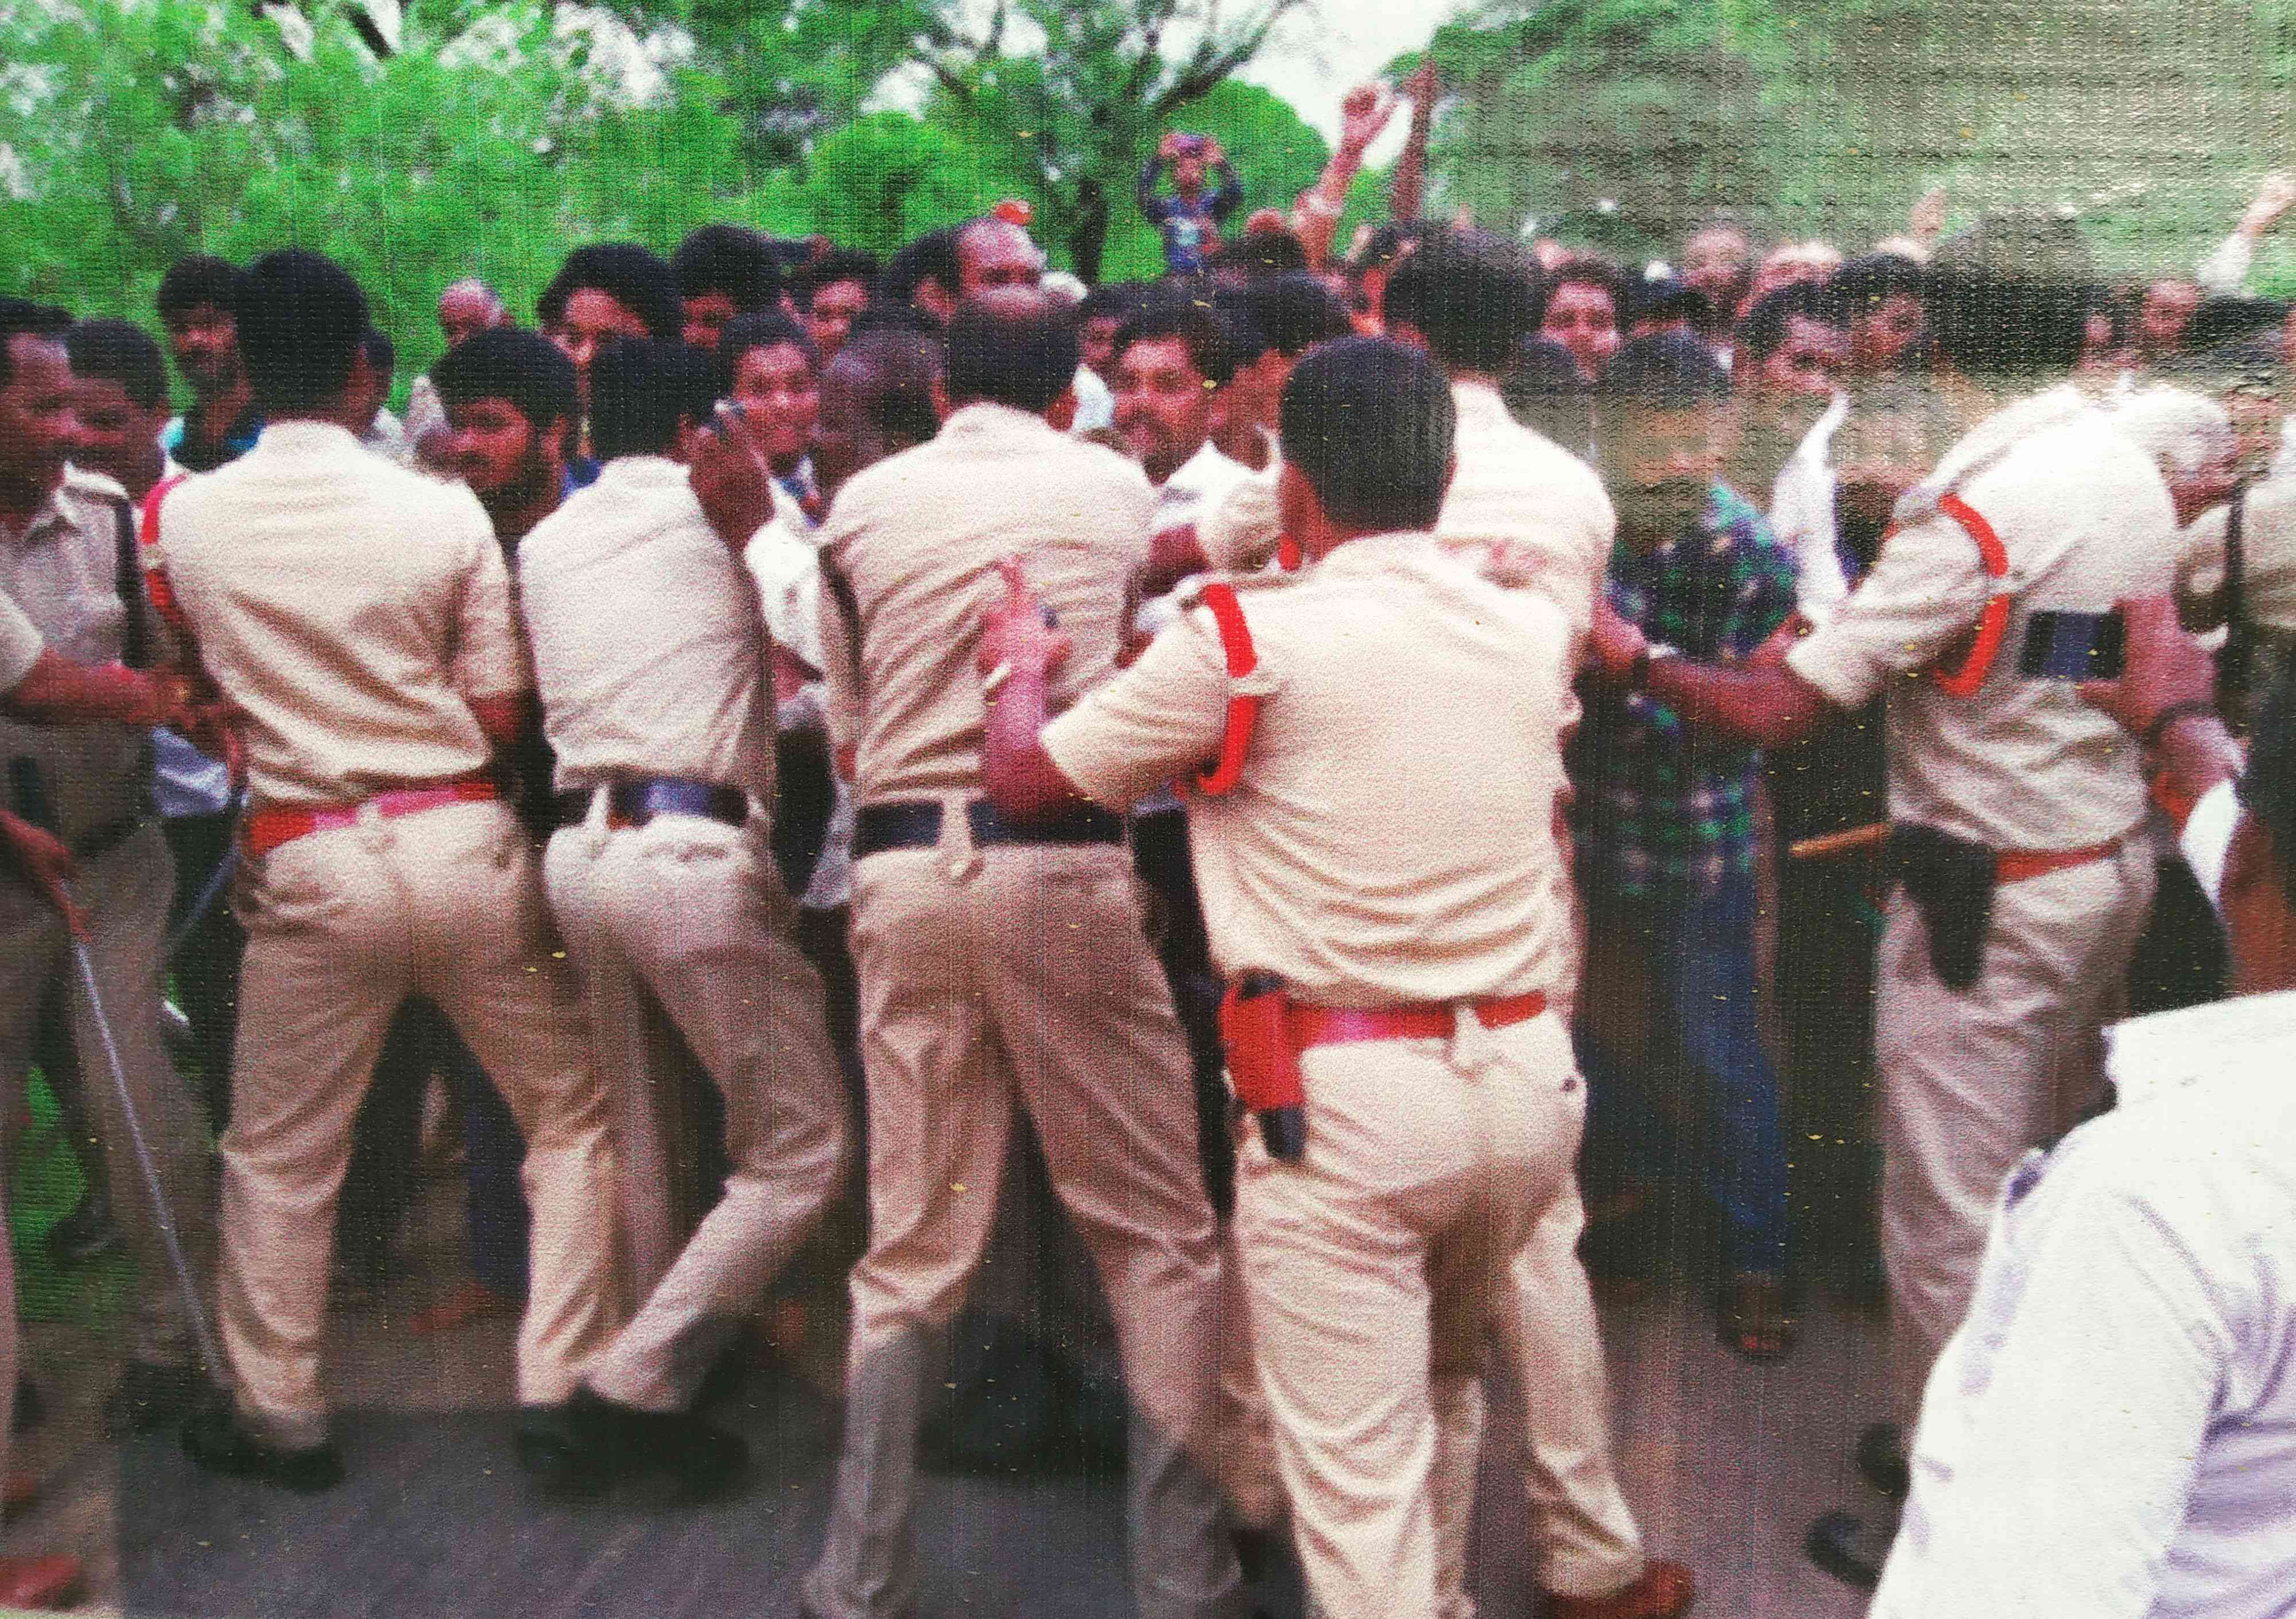 Police action during a protest against land acquisition in Vemulaghat in July, 2016.